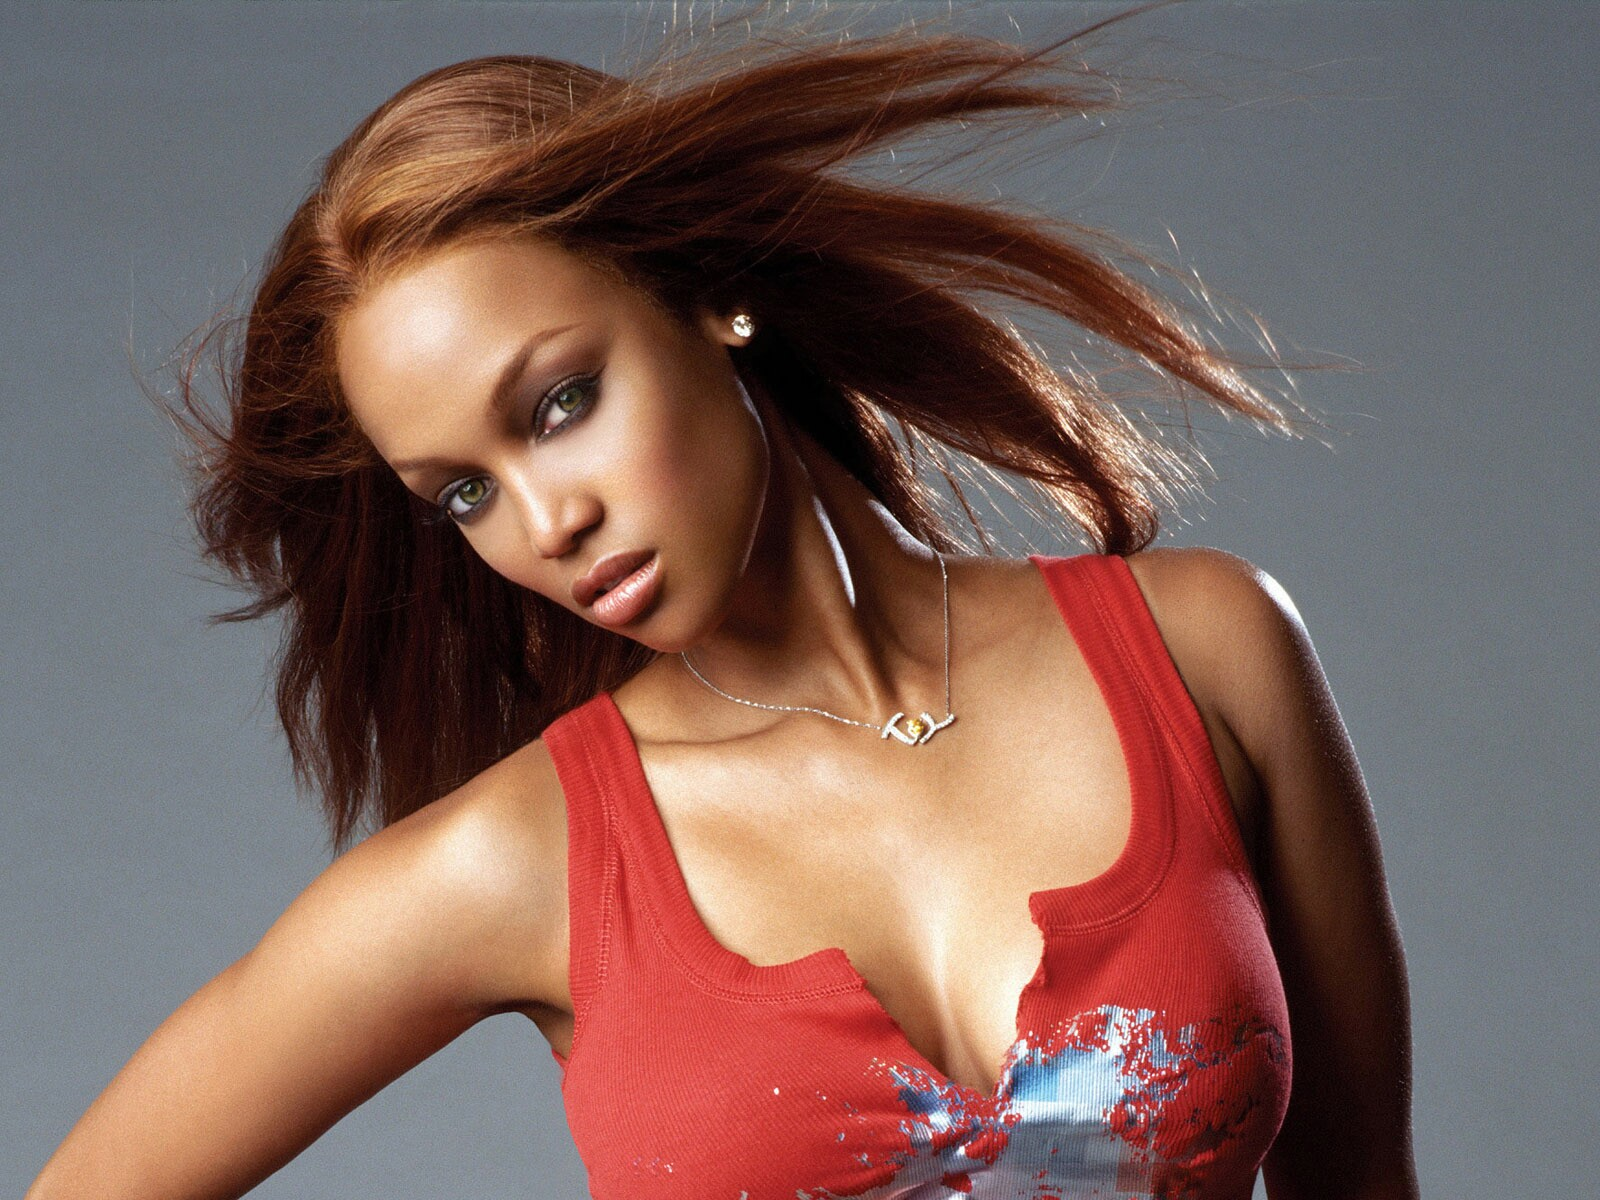 hq celebrity pictures Tyra Banks hot hd wallpapers